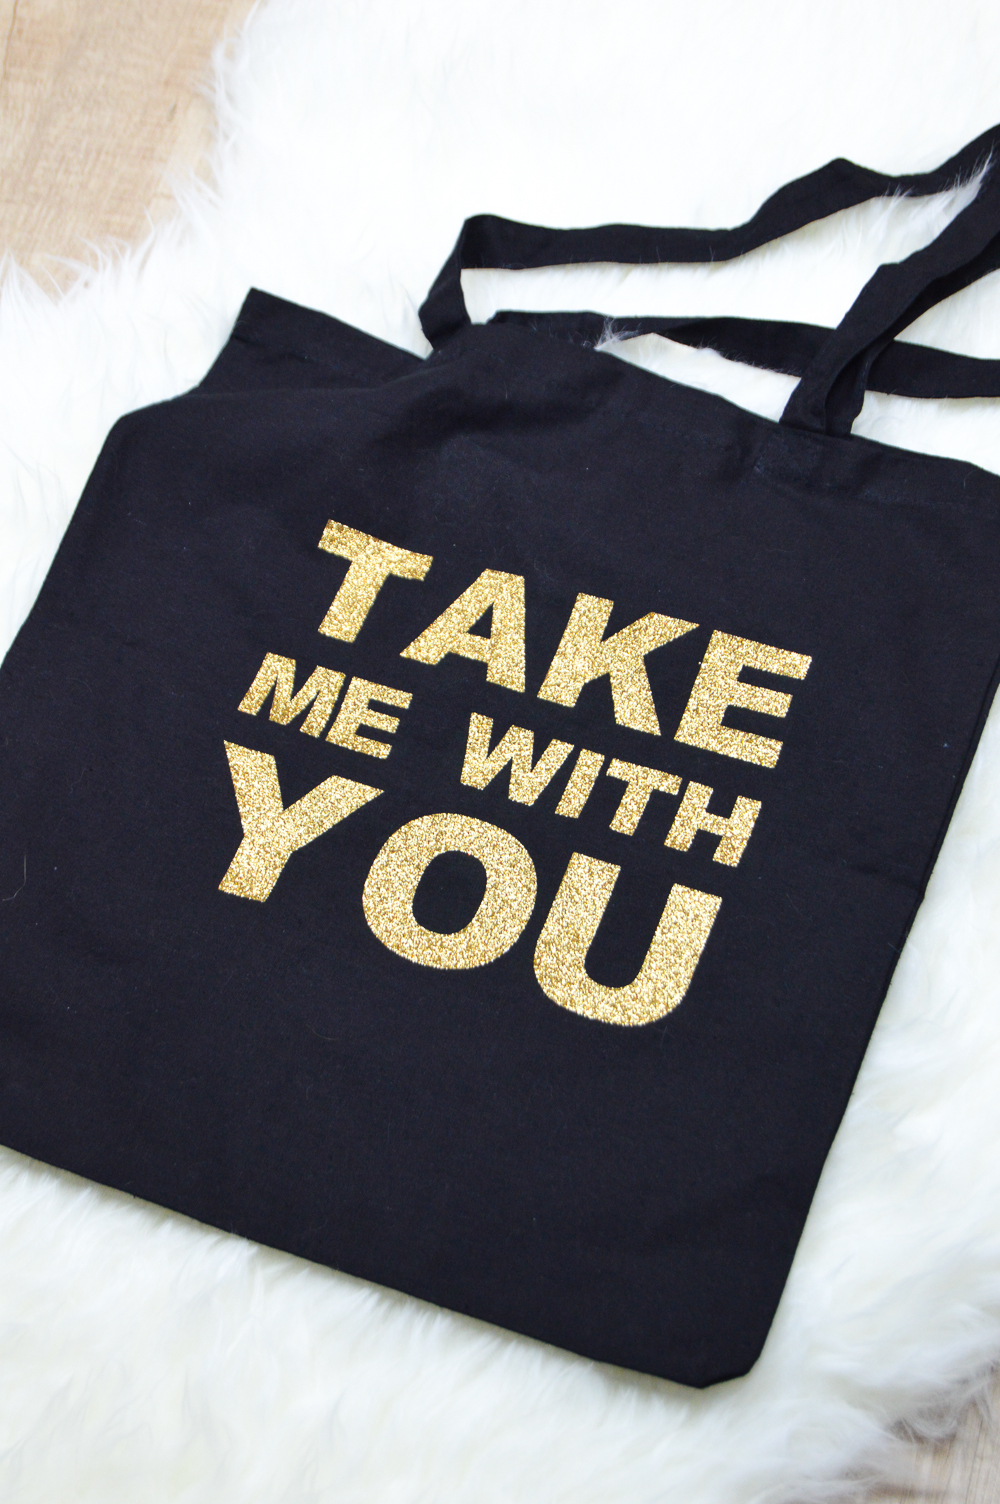 DIY Glittery Graphic Tote Bag | www.clubcrafted.com